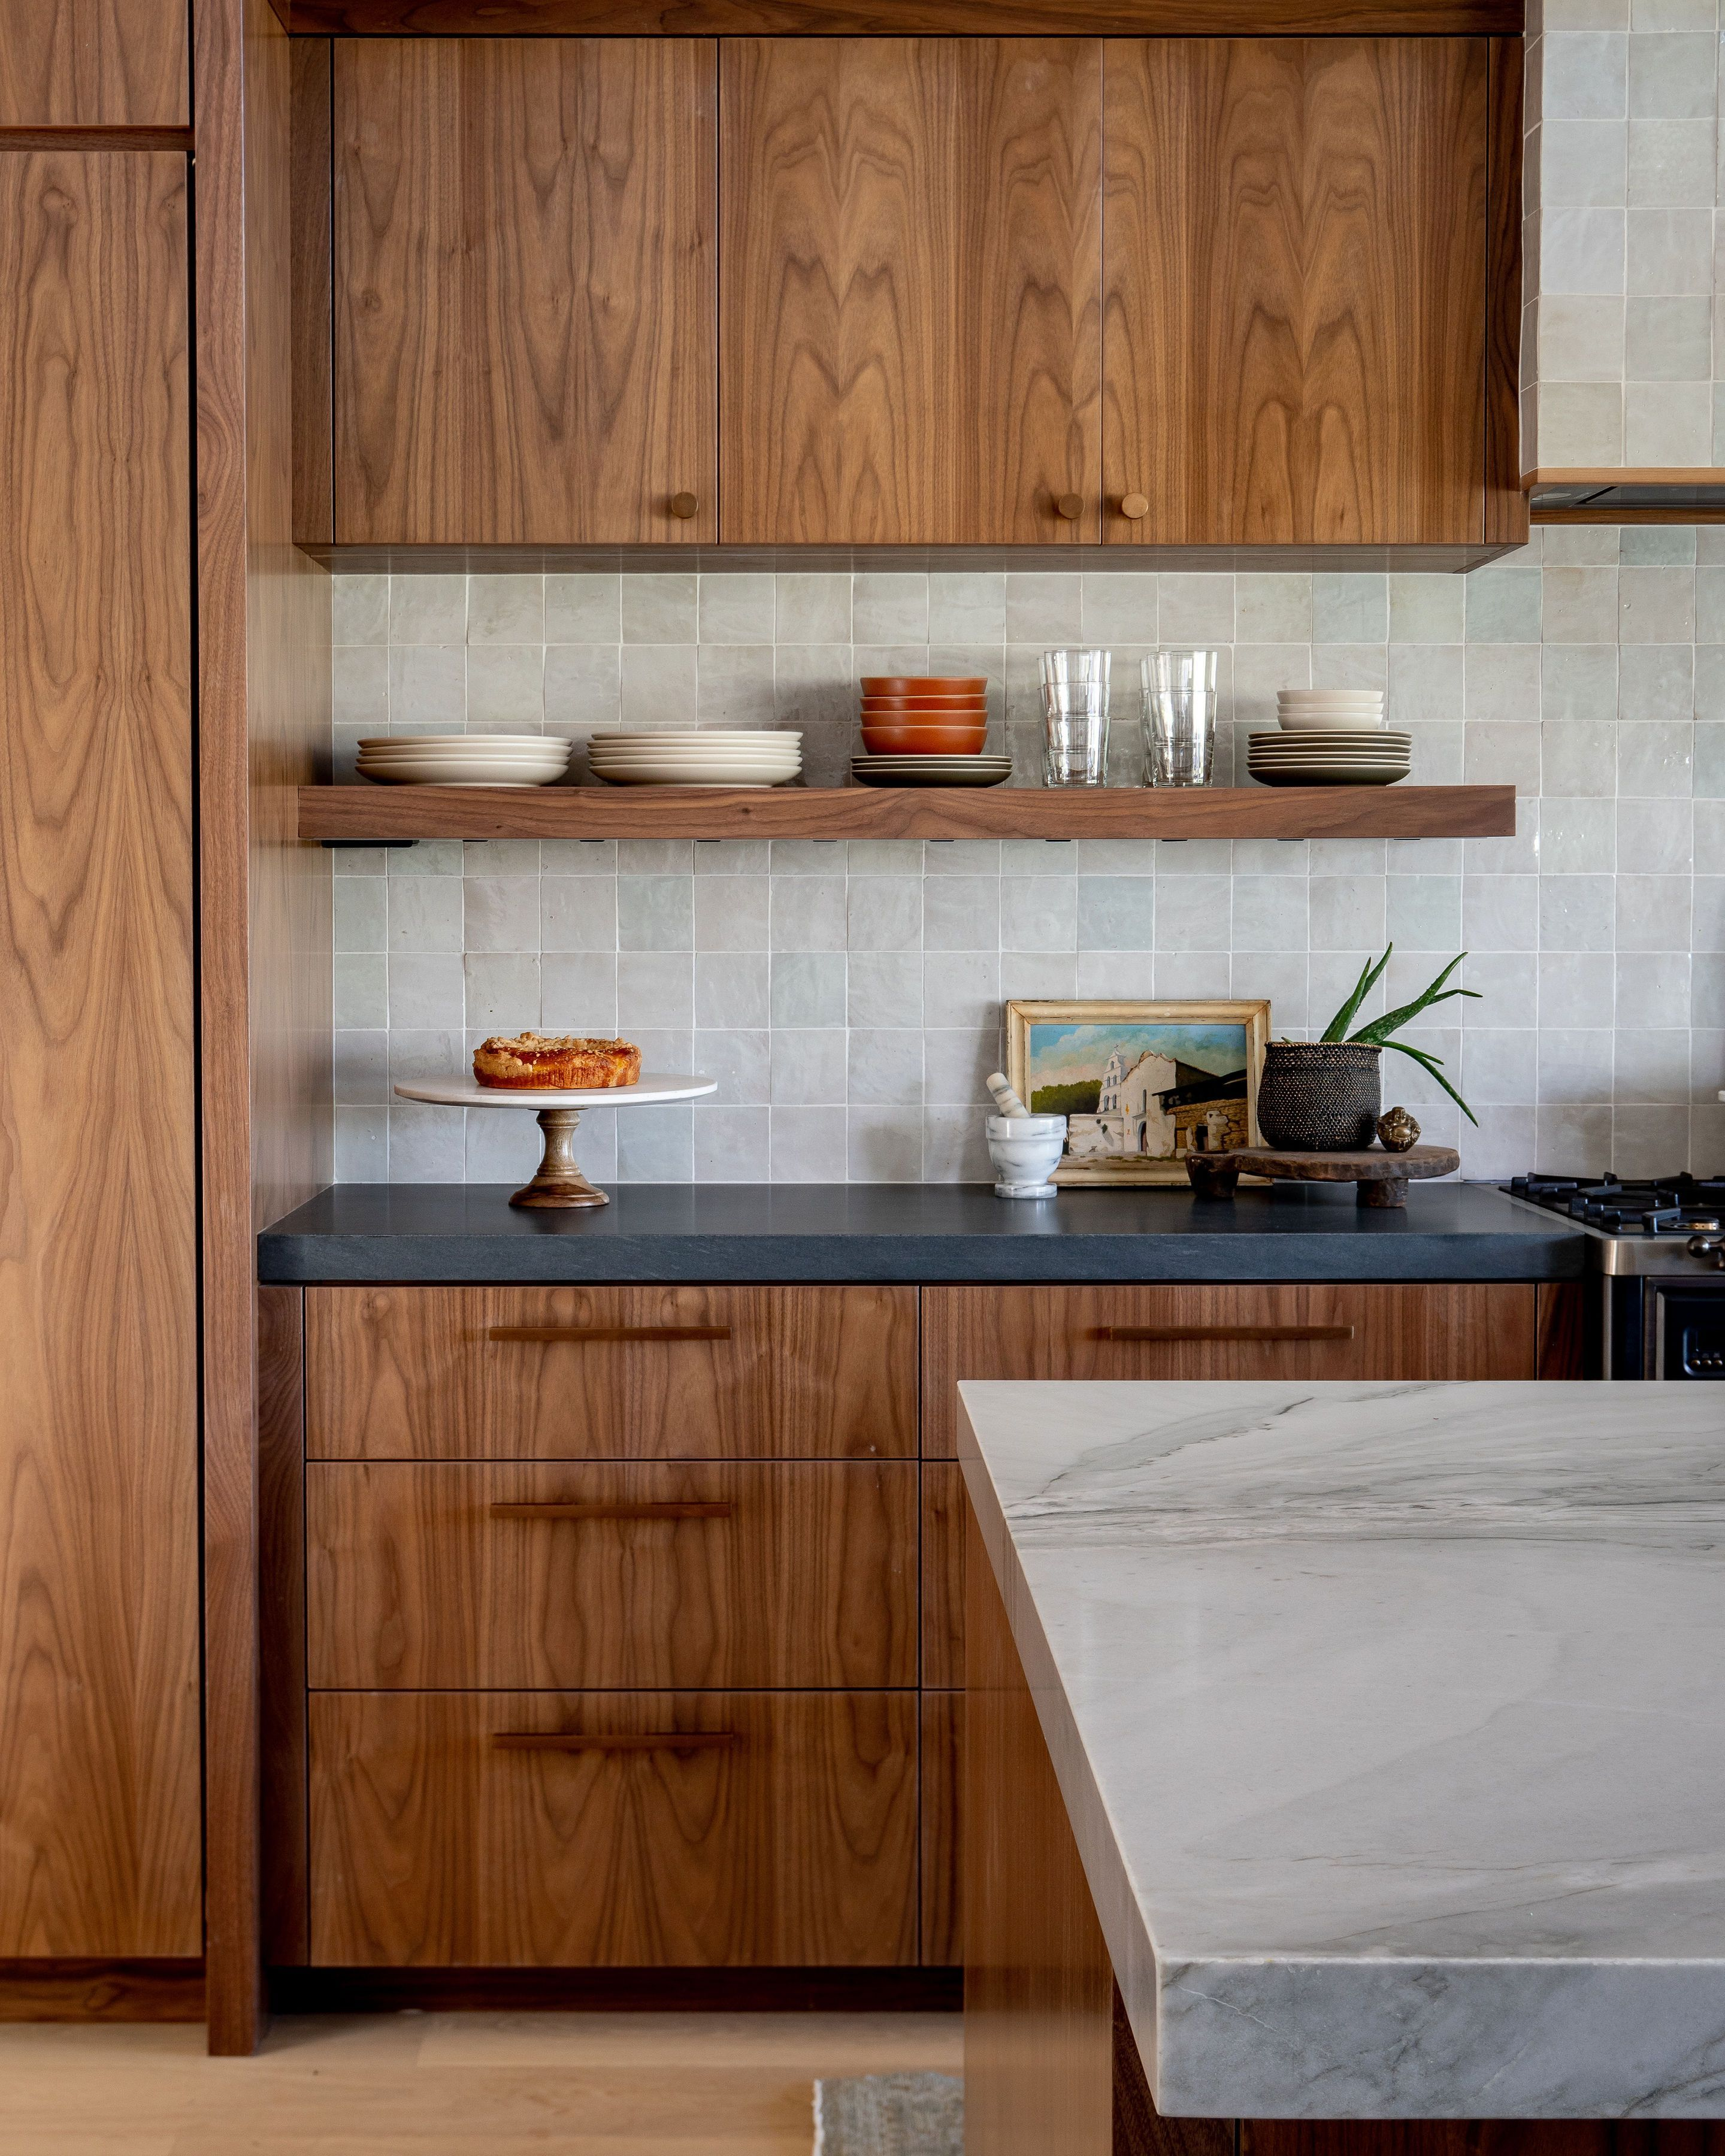 What A Genius Way To Add Height To Short Cabinets Kitchen Cabinets To Ceiling Upper Kitchen Cabinets Above Kitchen Cabinets